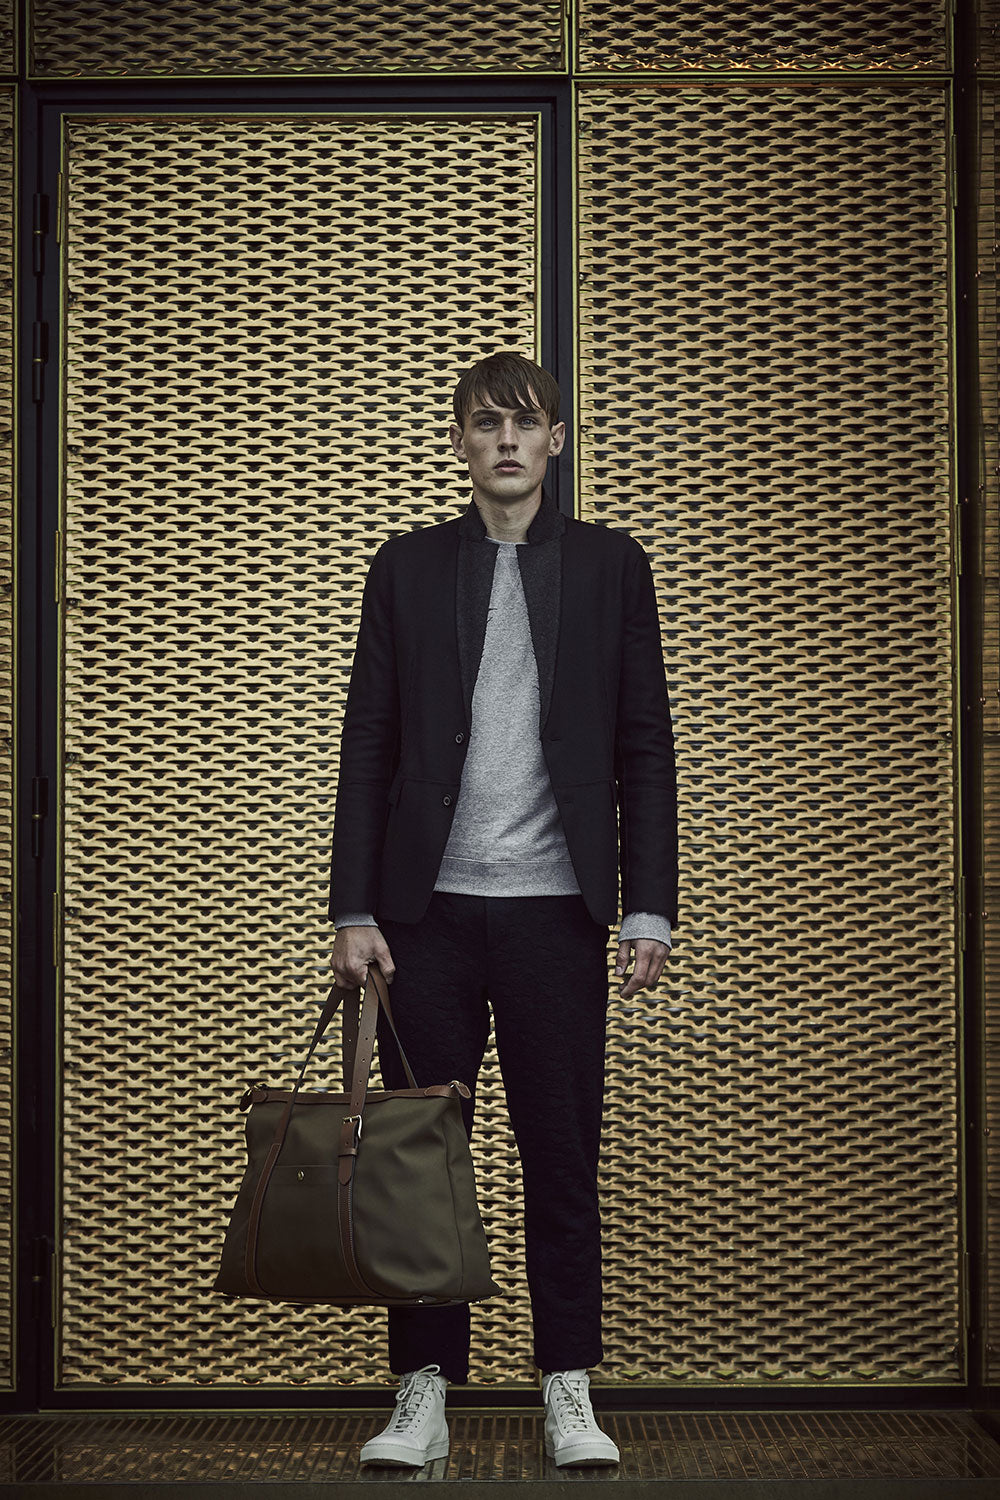 M/S Holdall - Sepia/Cuoio - Weekend bag